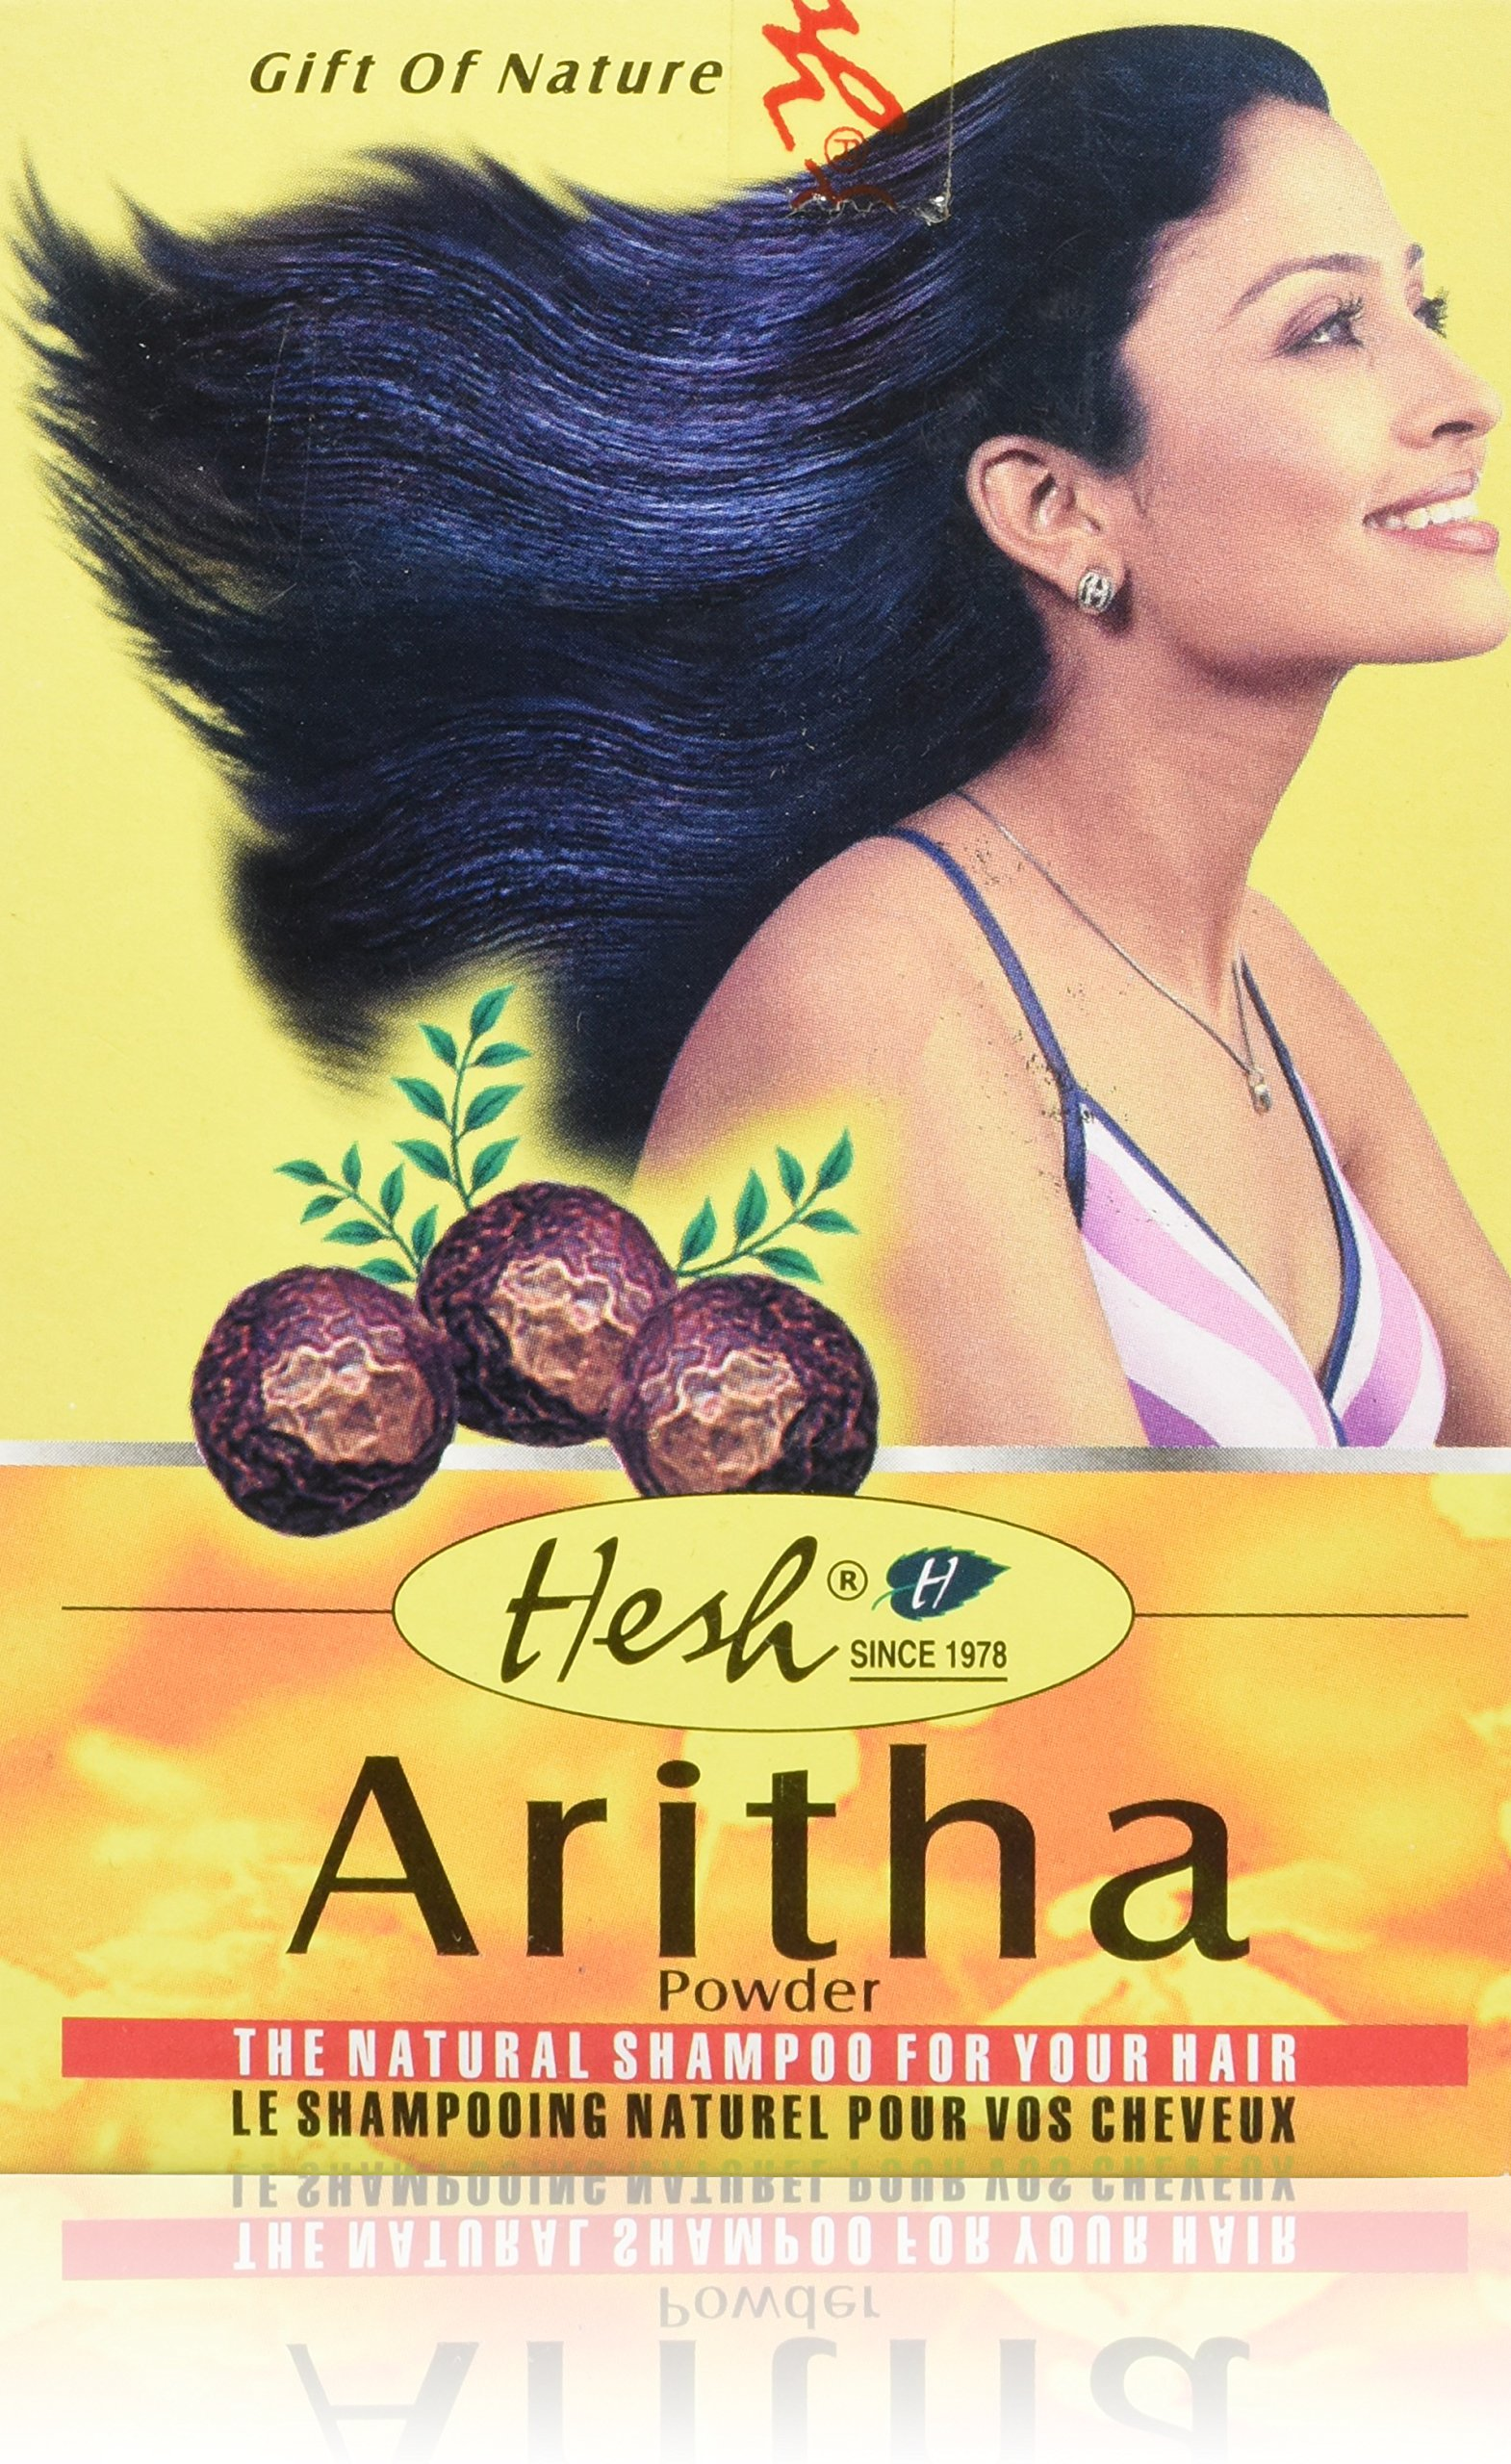 Hesh Aritha Herbal Ayurveda Powder The Natural Shampoo for Your Hair (100 g / 3.5 oz)